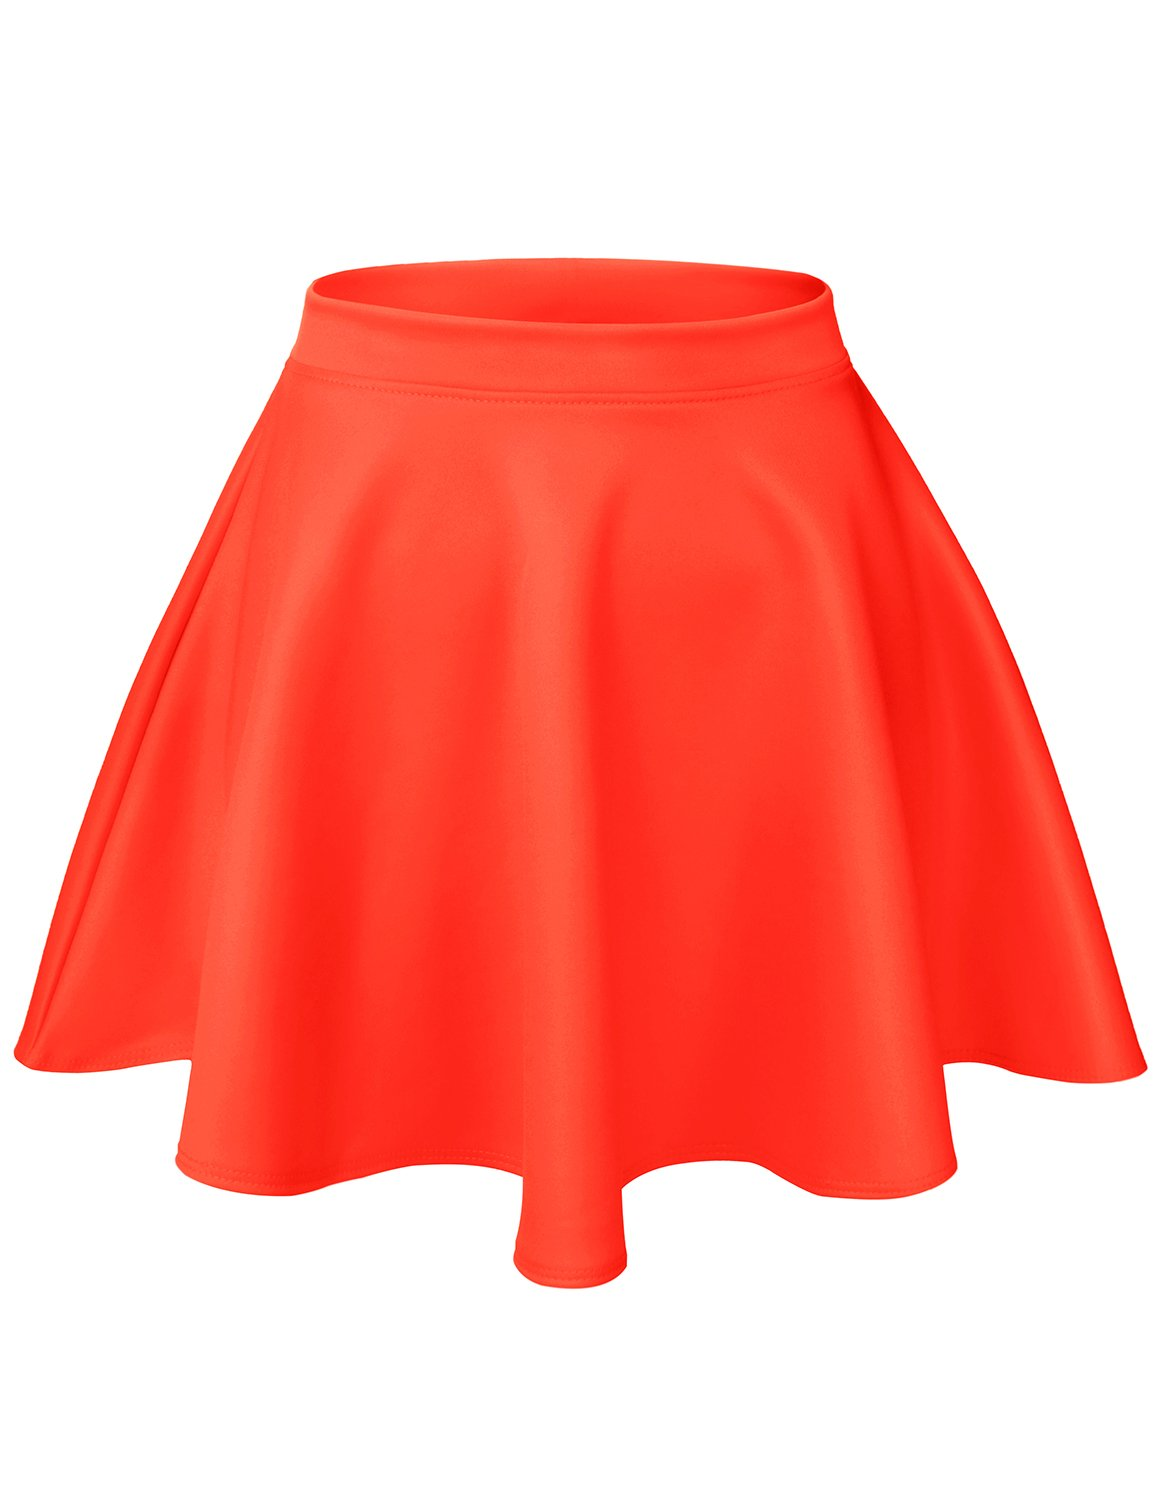 Luna Flower Women's Basic Versatile Stretchy Flared Casual Mini Skater Skirt NEON_Orange Large (GSKW001)